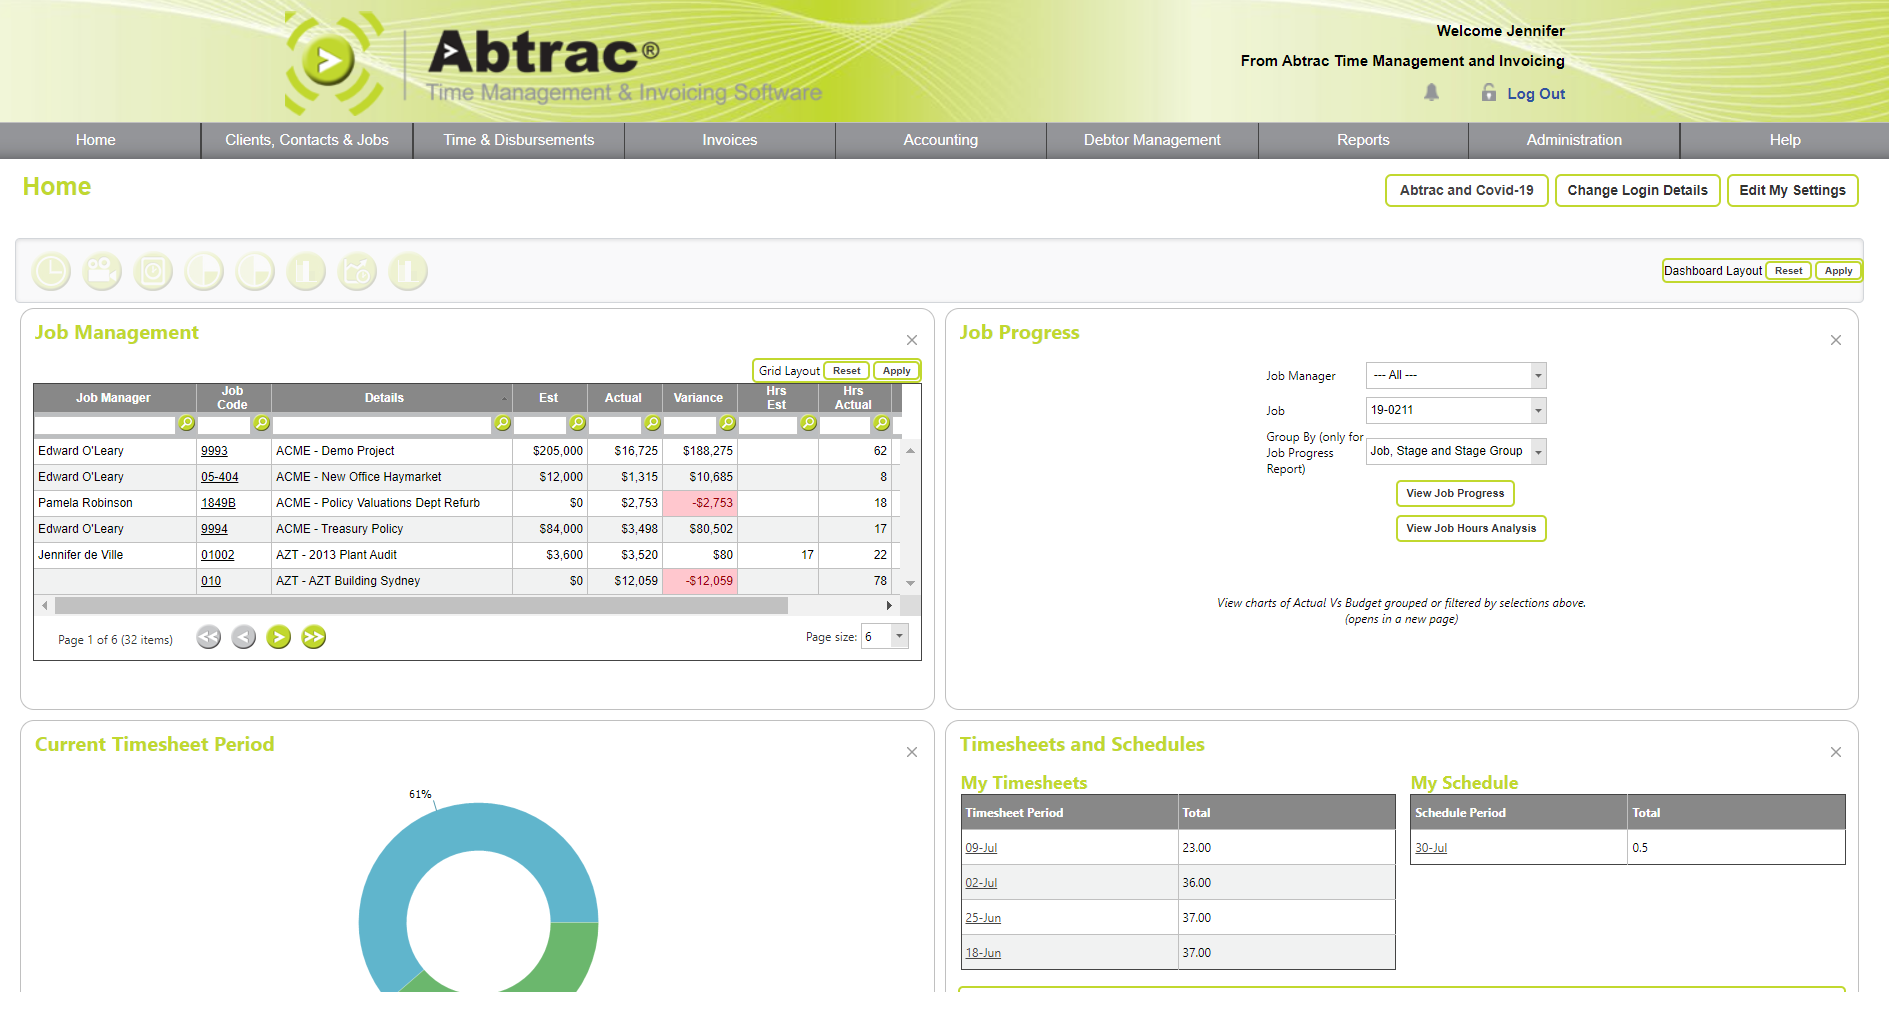 Abtrac Software - Home Screen & Analysis (customisable for each user)